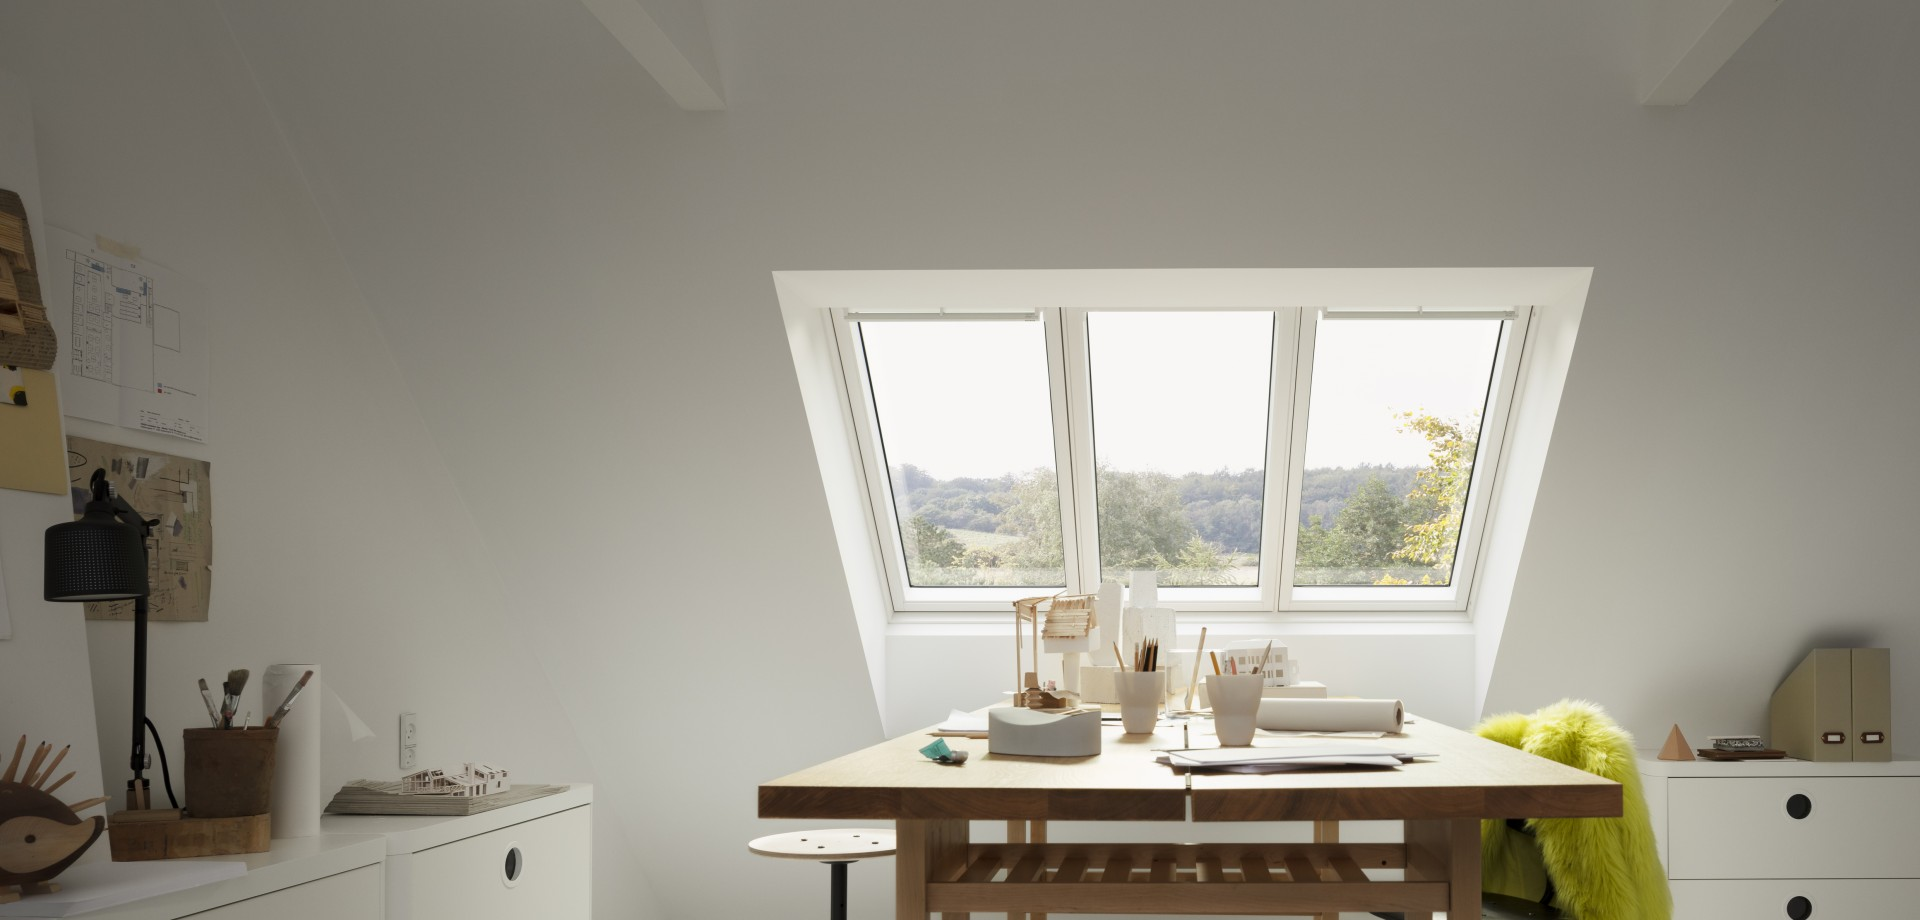 VELUX Studio 3-in-1